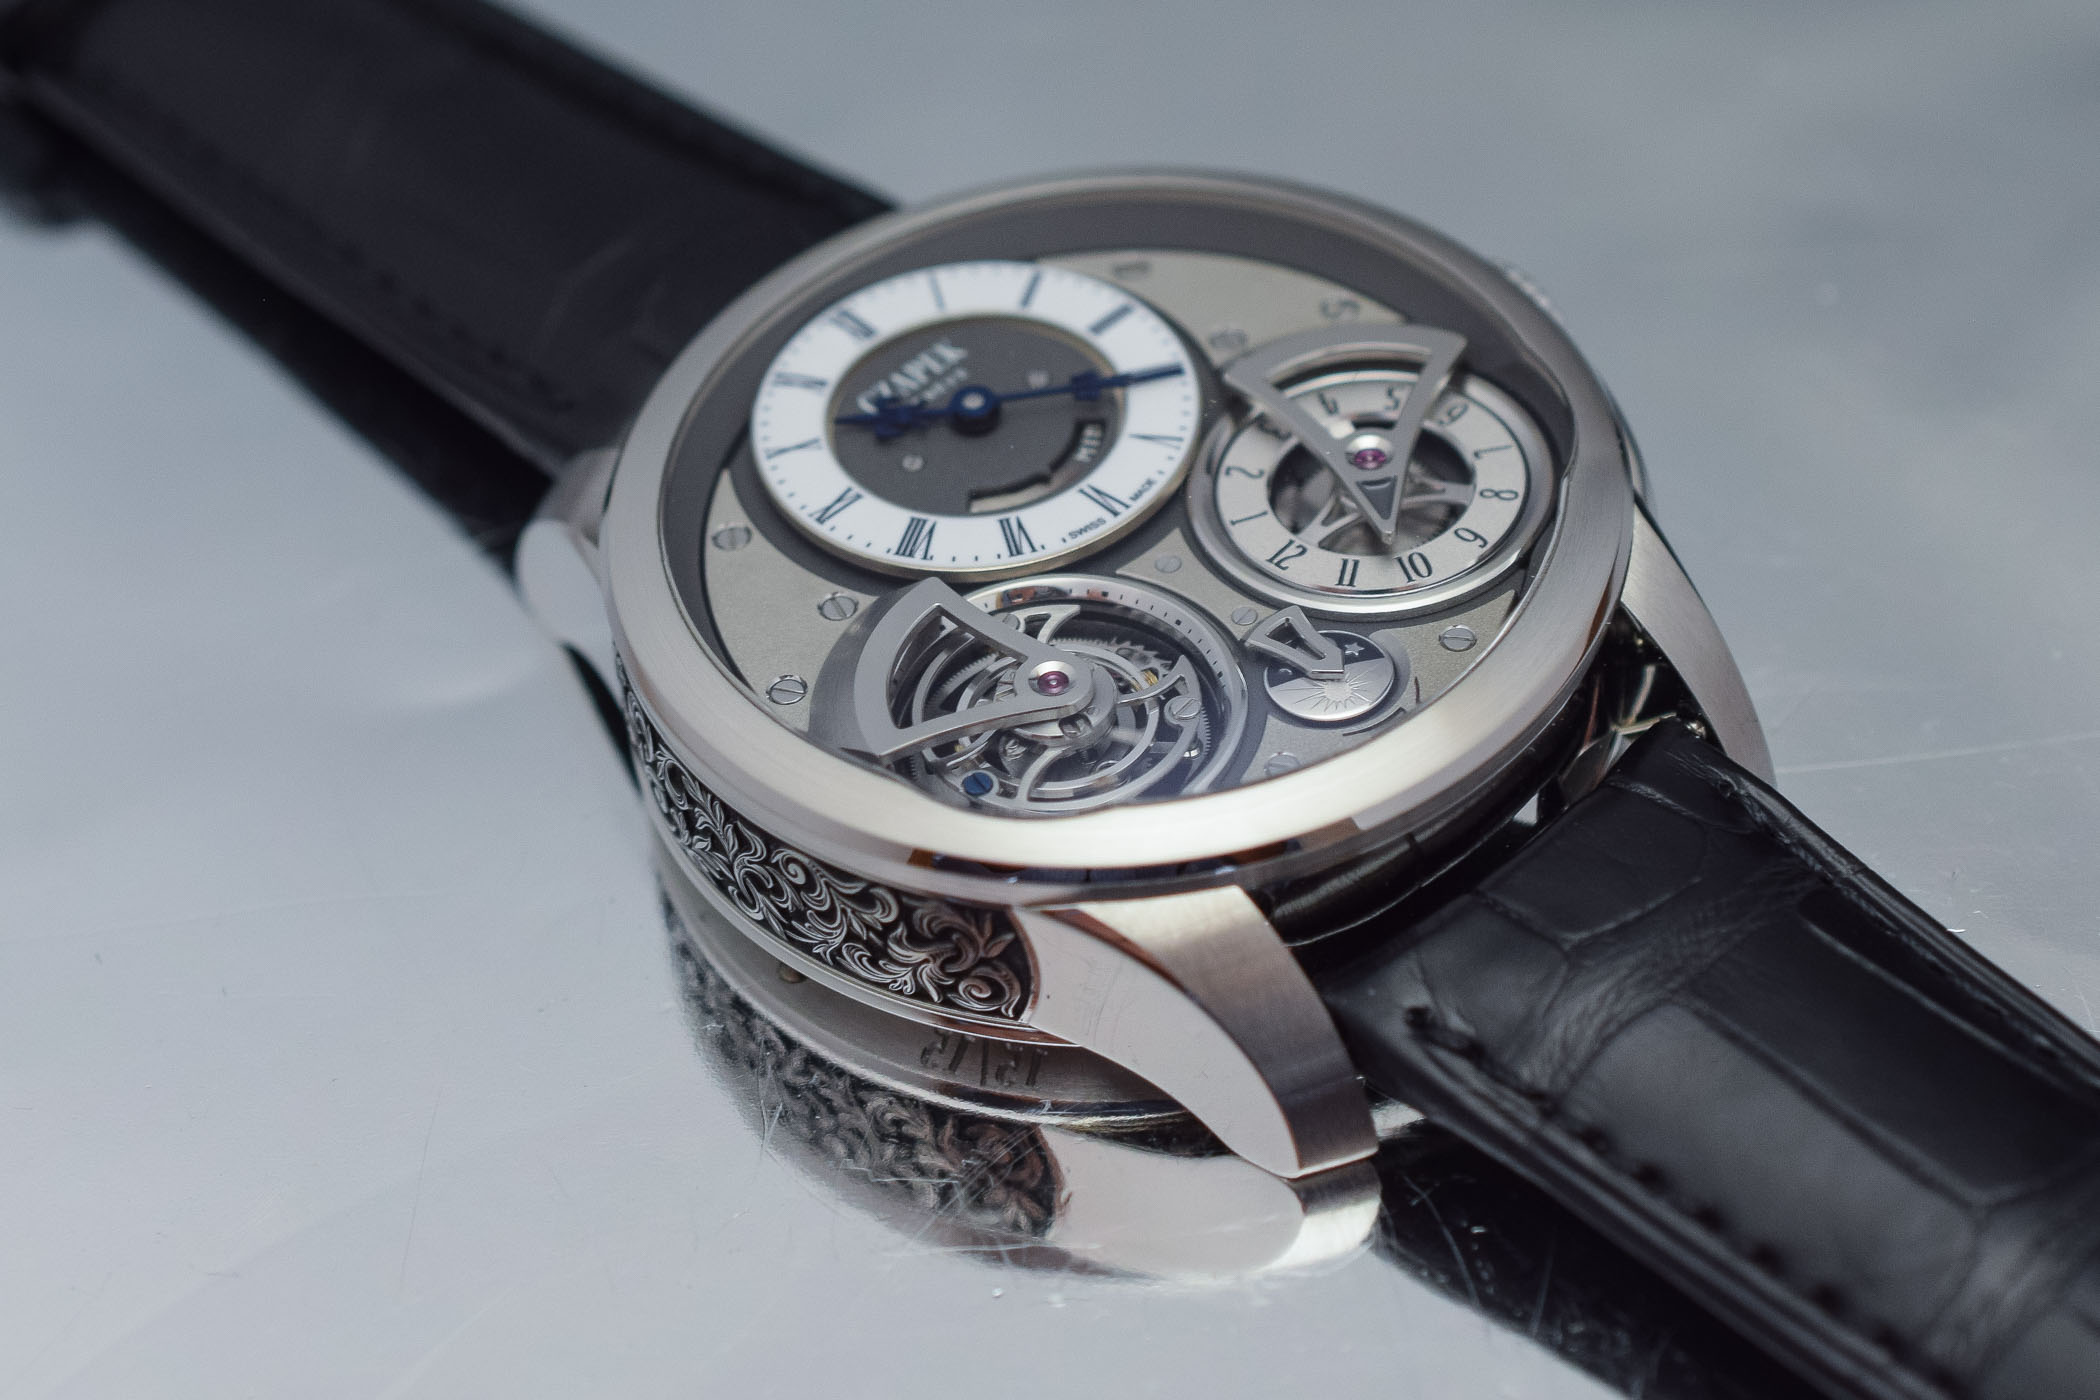 Czapek Place Vendôme Tourbillon Suspendu GMT Acanthus Leaves Engraved